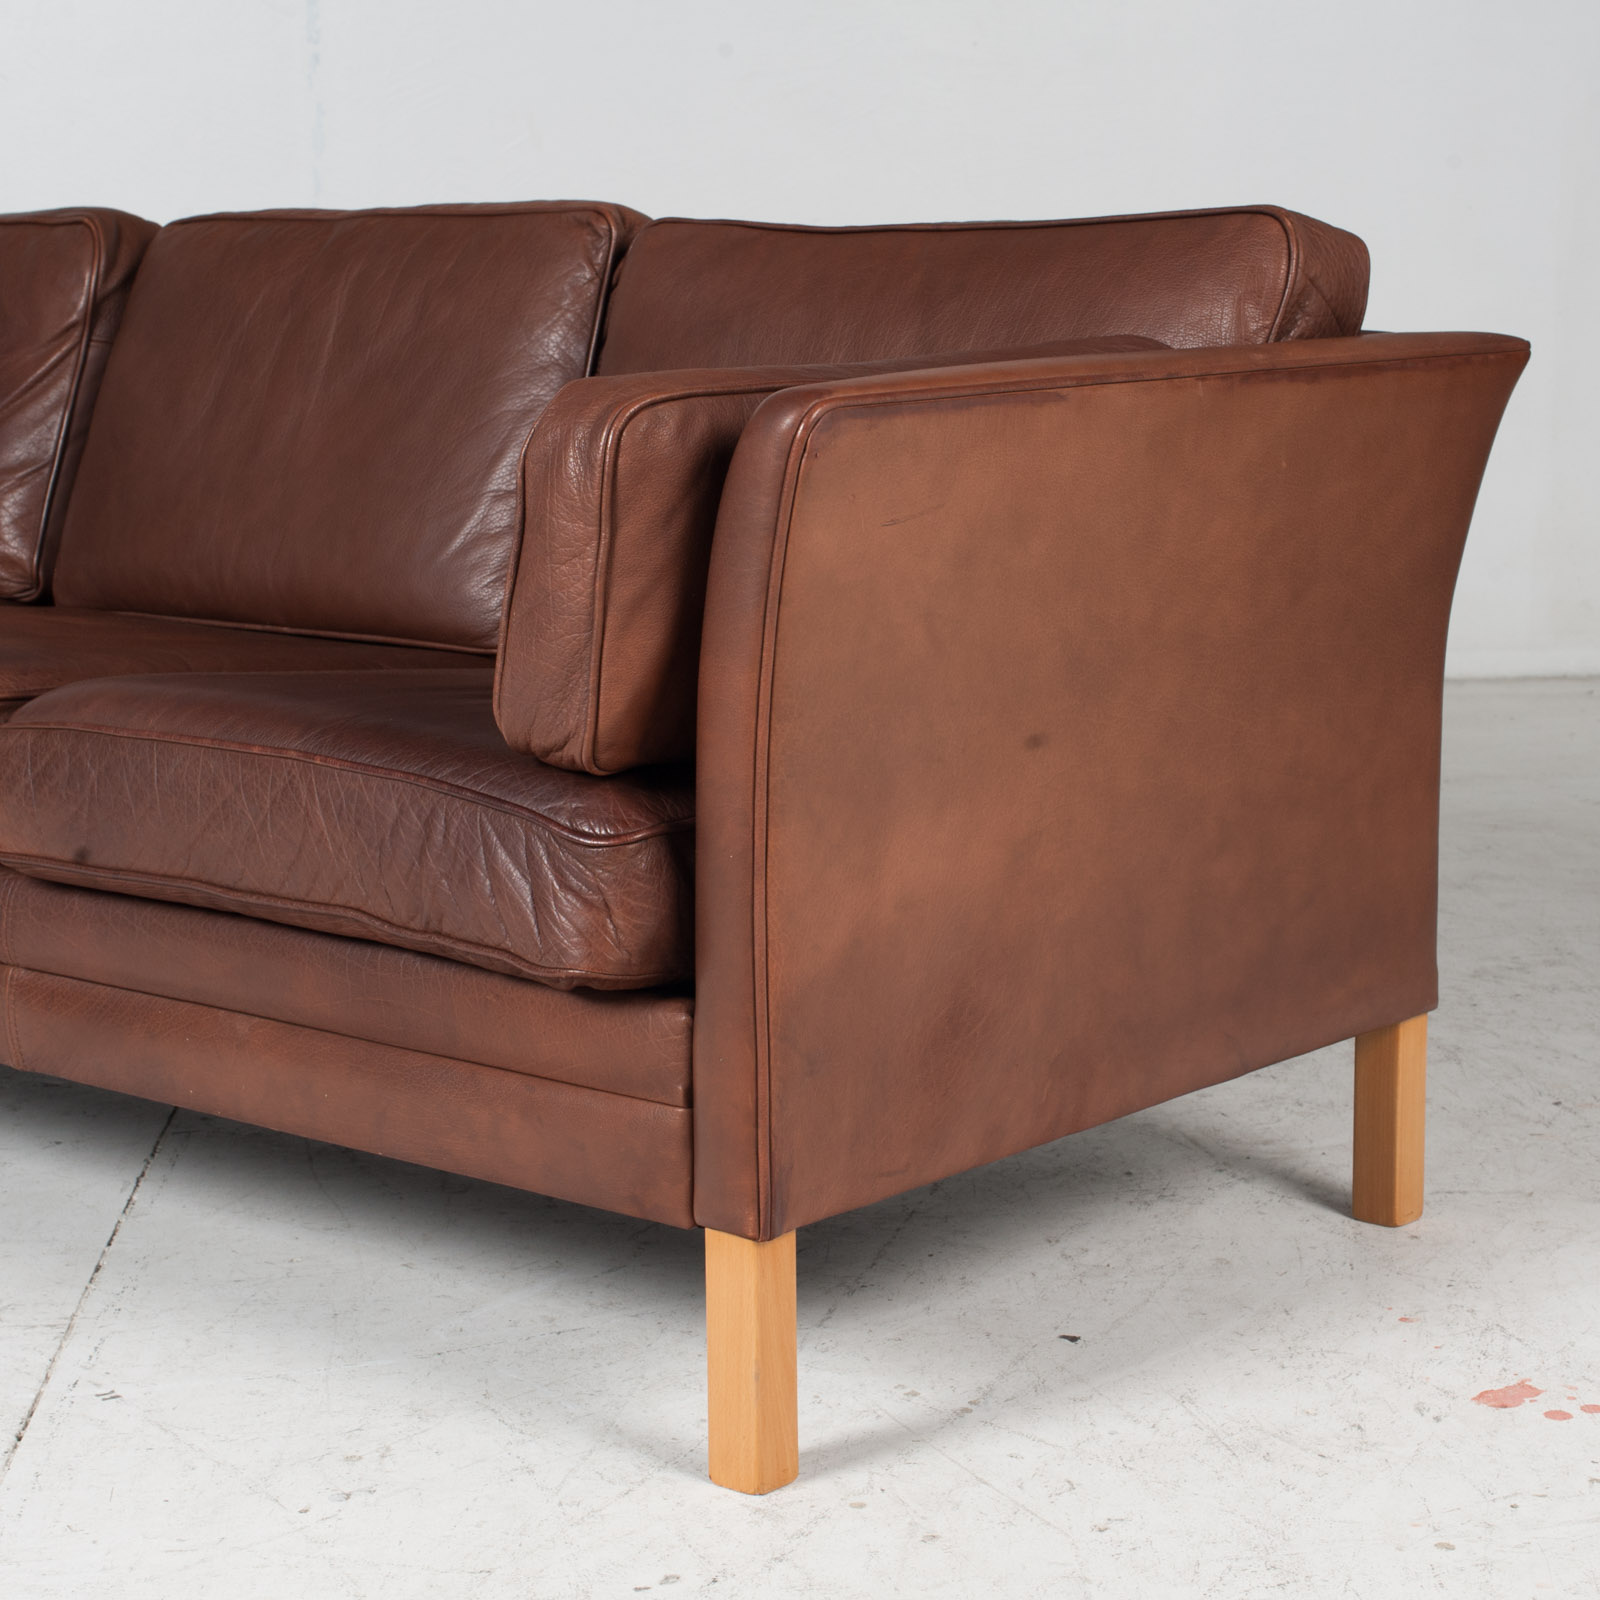 3 Seat Sofa In Brown Leather With Beech Legs, 1960s, Denmark 6